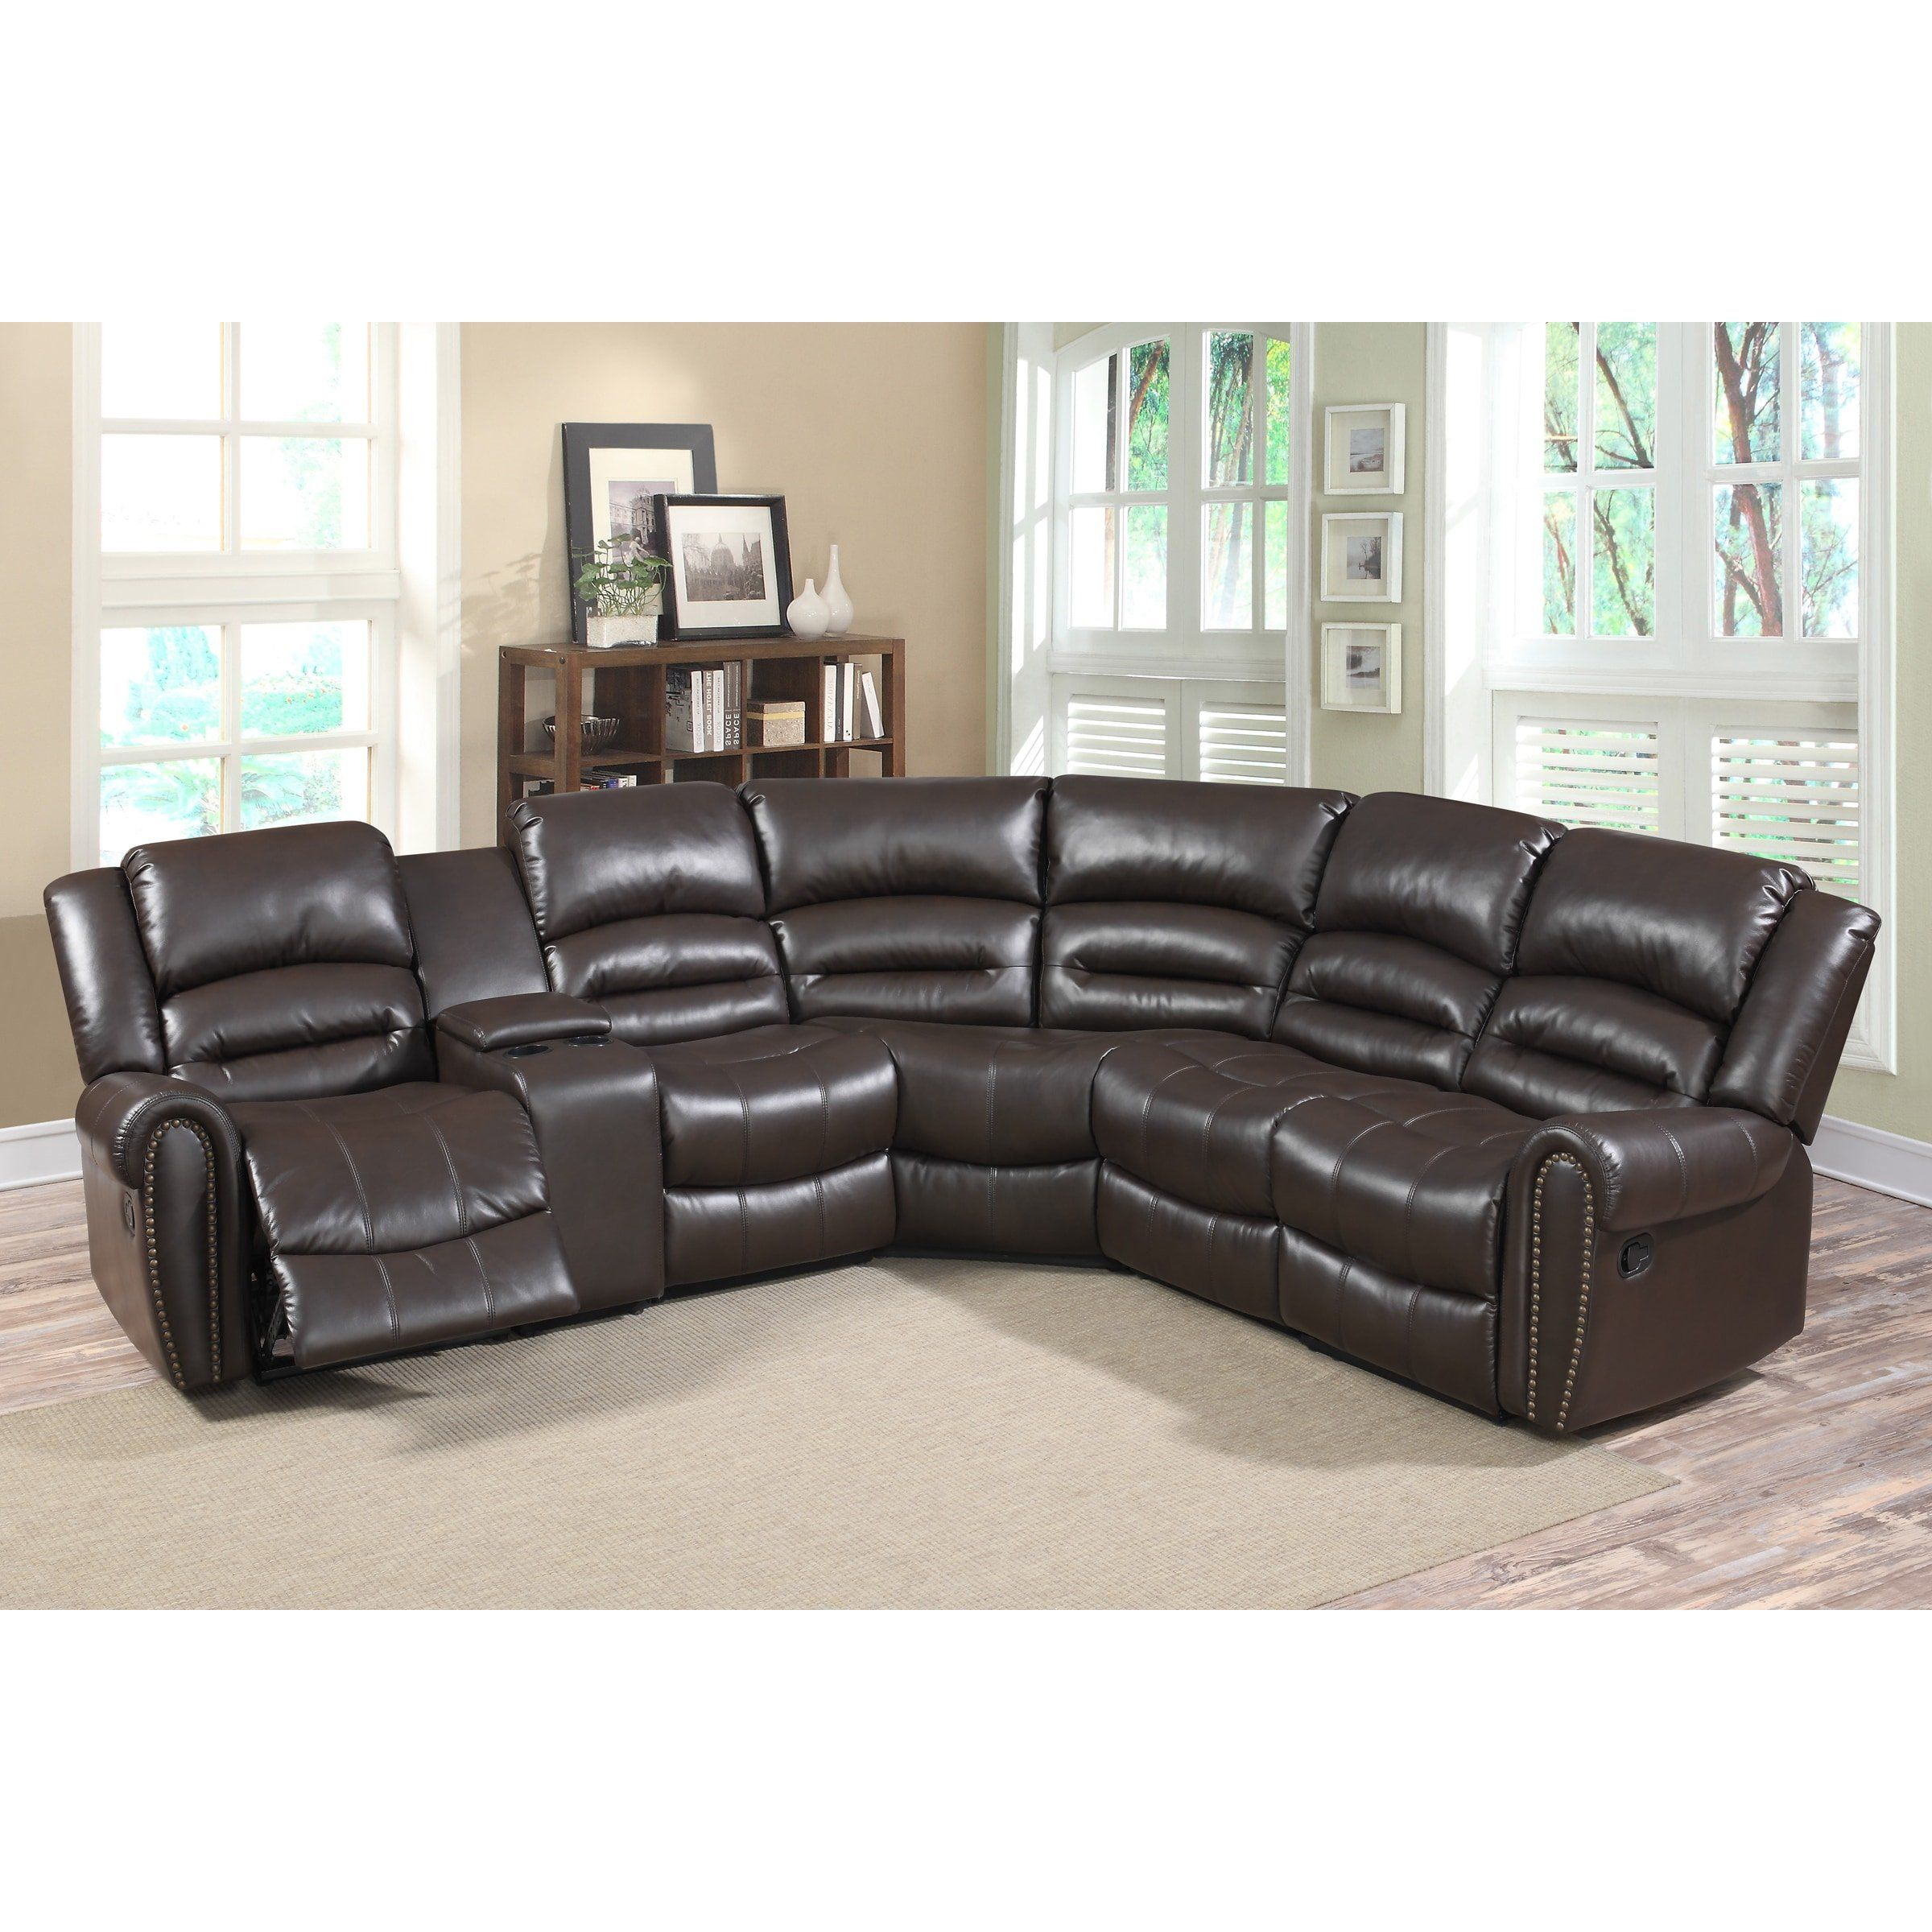 Tremendous Us Furnishings Express Connie Brown Fauxleather 6Piece Short Links Chair Design For Home Short Linksinfo